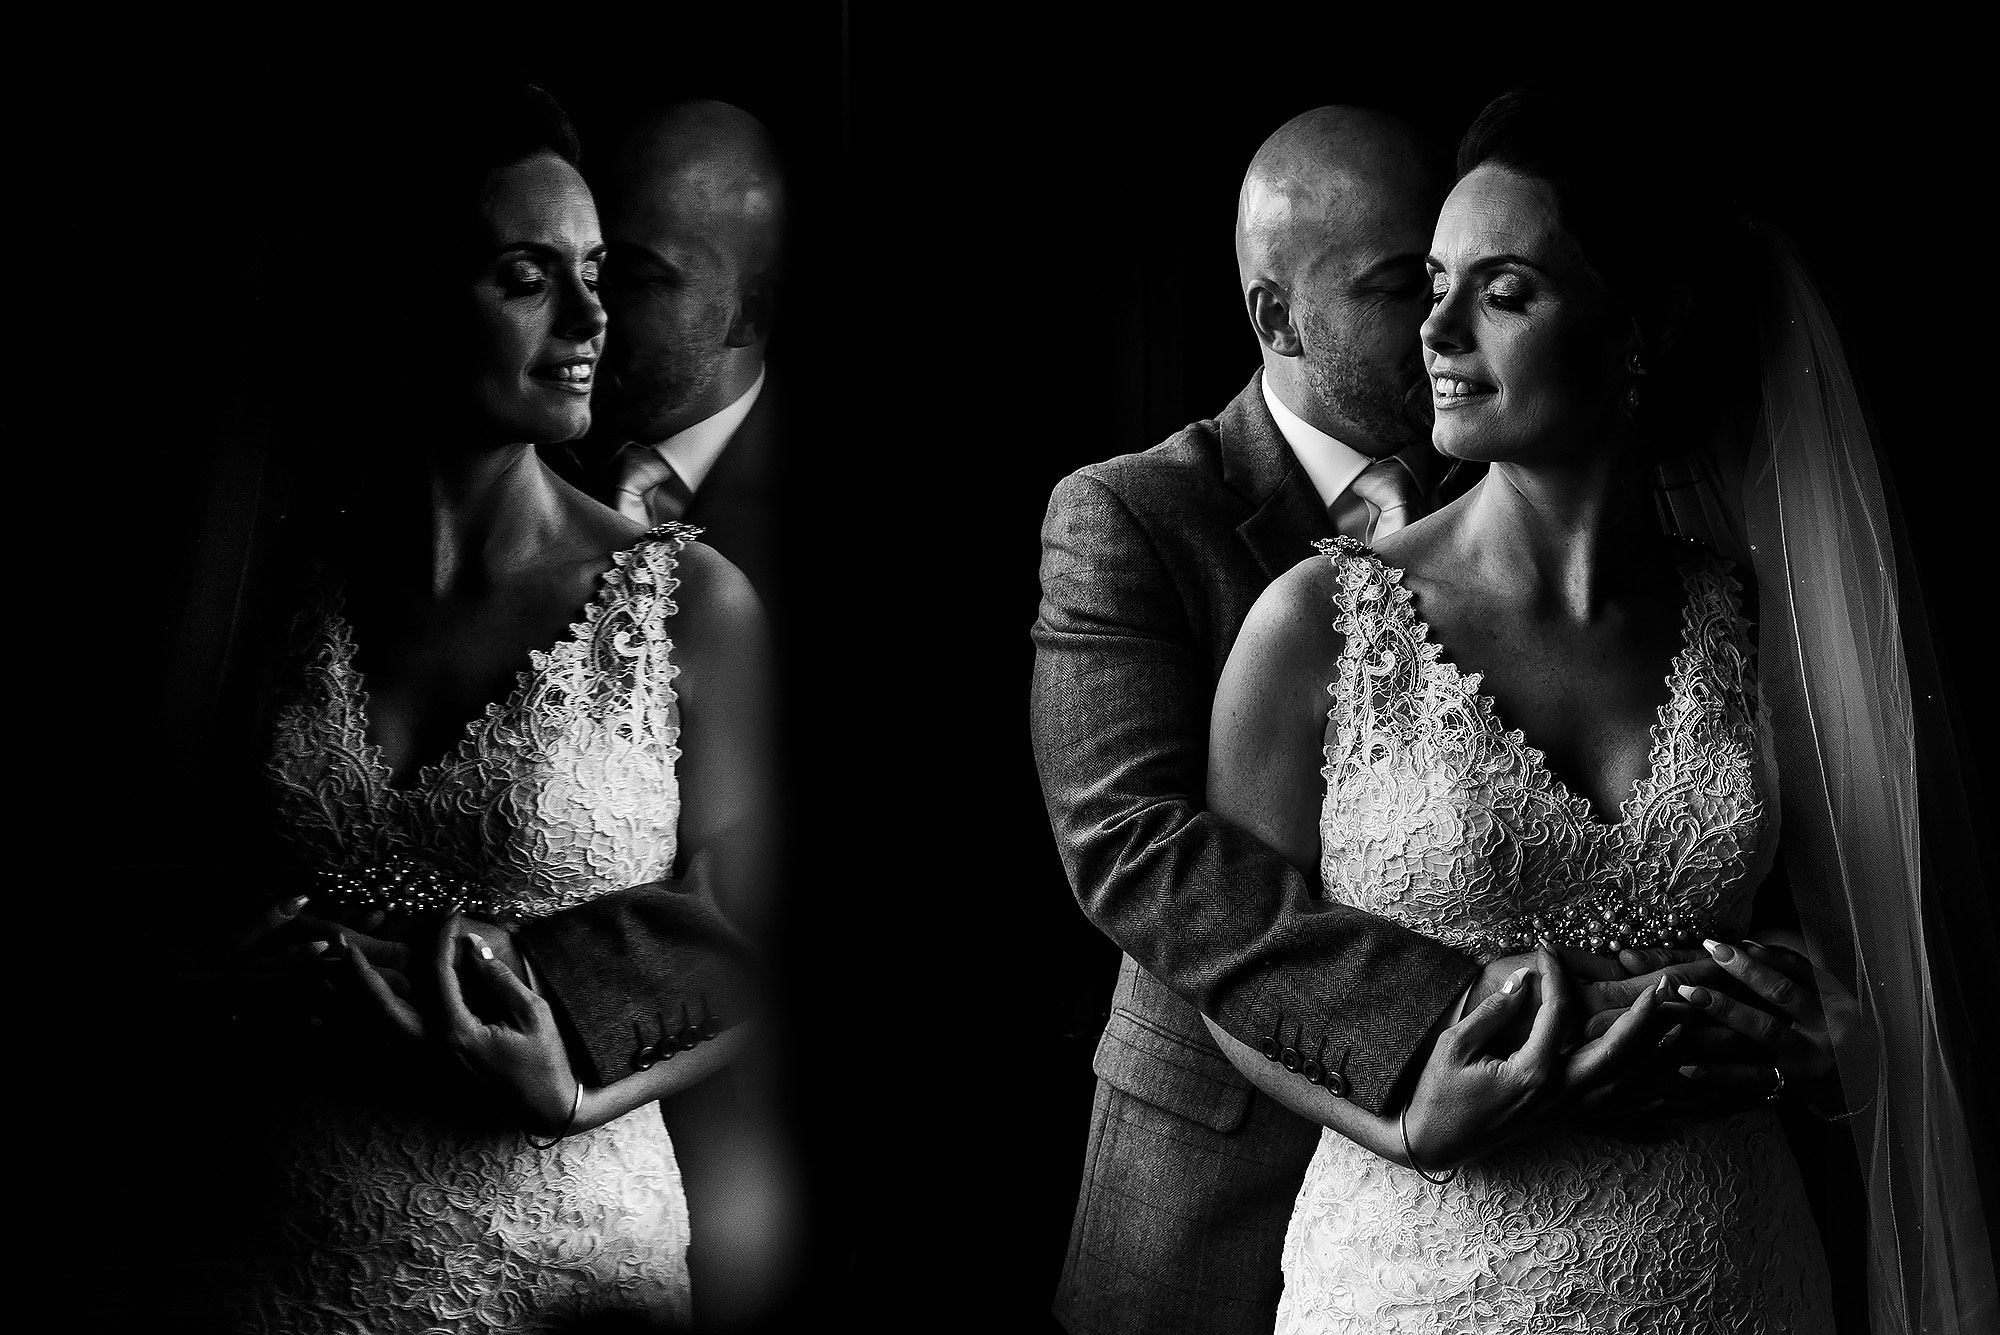 Groom with bald head holding his bride in his arms as she wears lace wedding dress | Summer wedding at Wellbeing Farm - Toni Darcy Photography